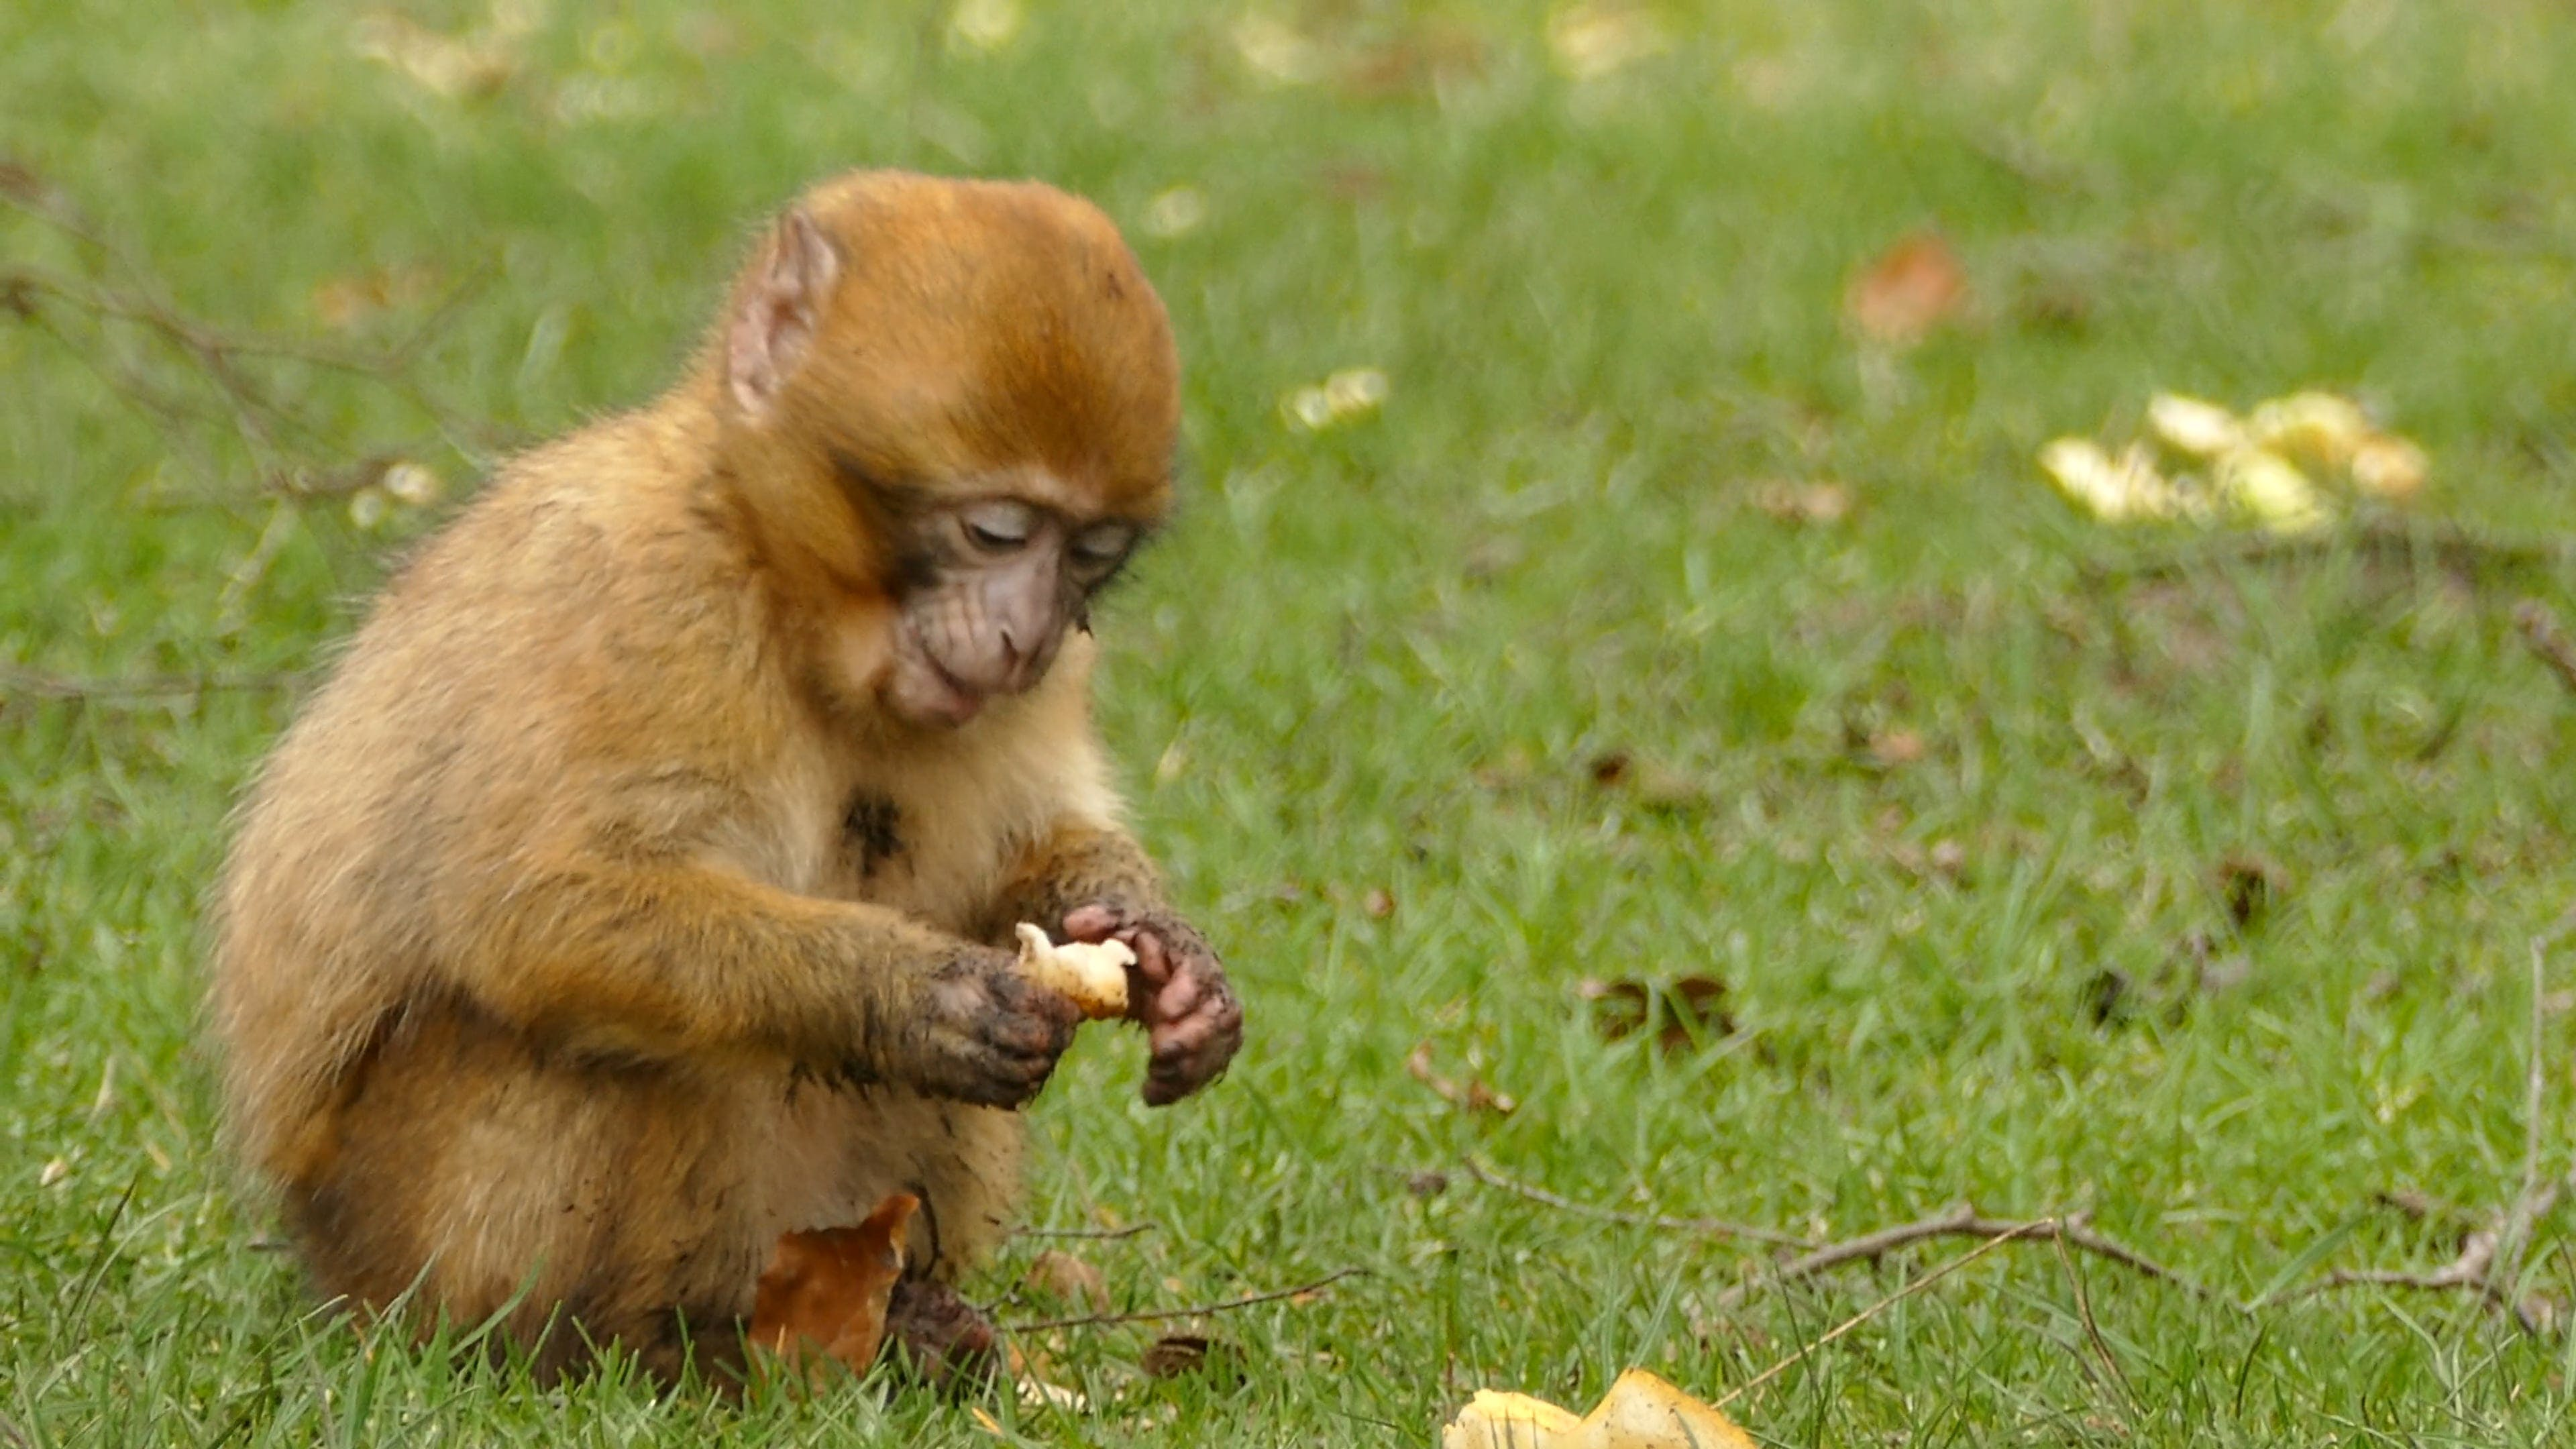 Little Monkey Eating Bread